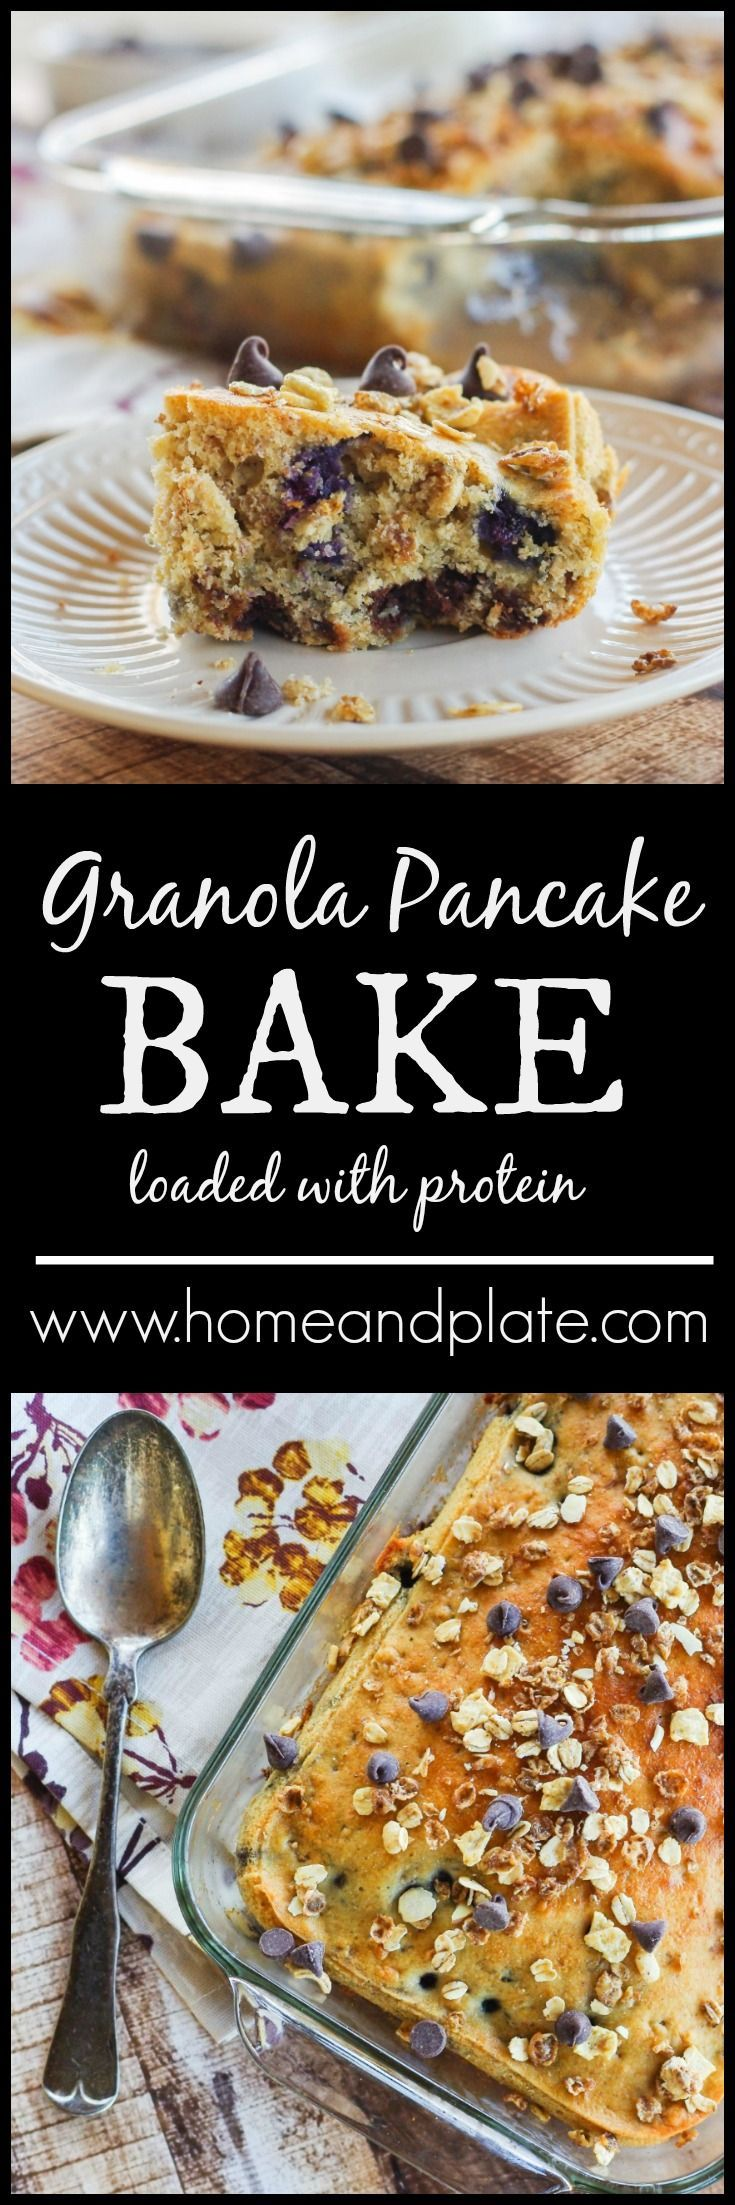 Granola Pancake Bake - Do you need to feed a crowd or a team of hungry athletes? Serve up this healthy, protein-rich granola pancake bake for breakfast! | Home and Plate